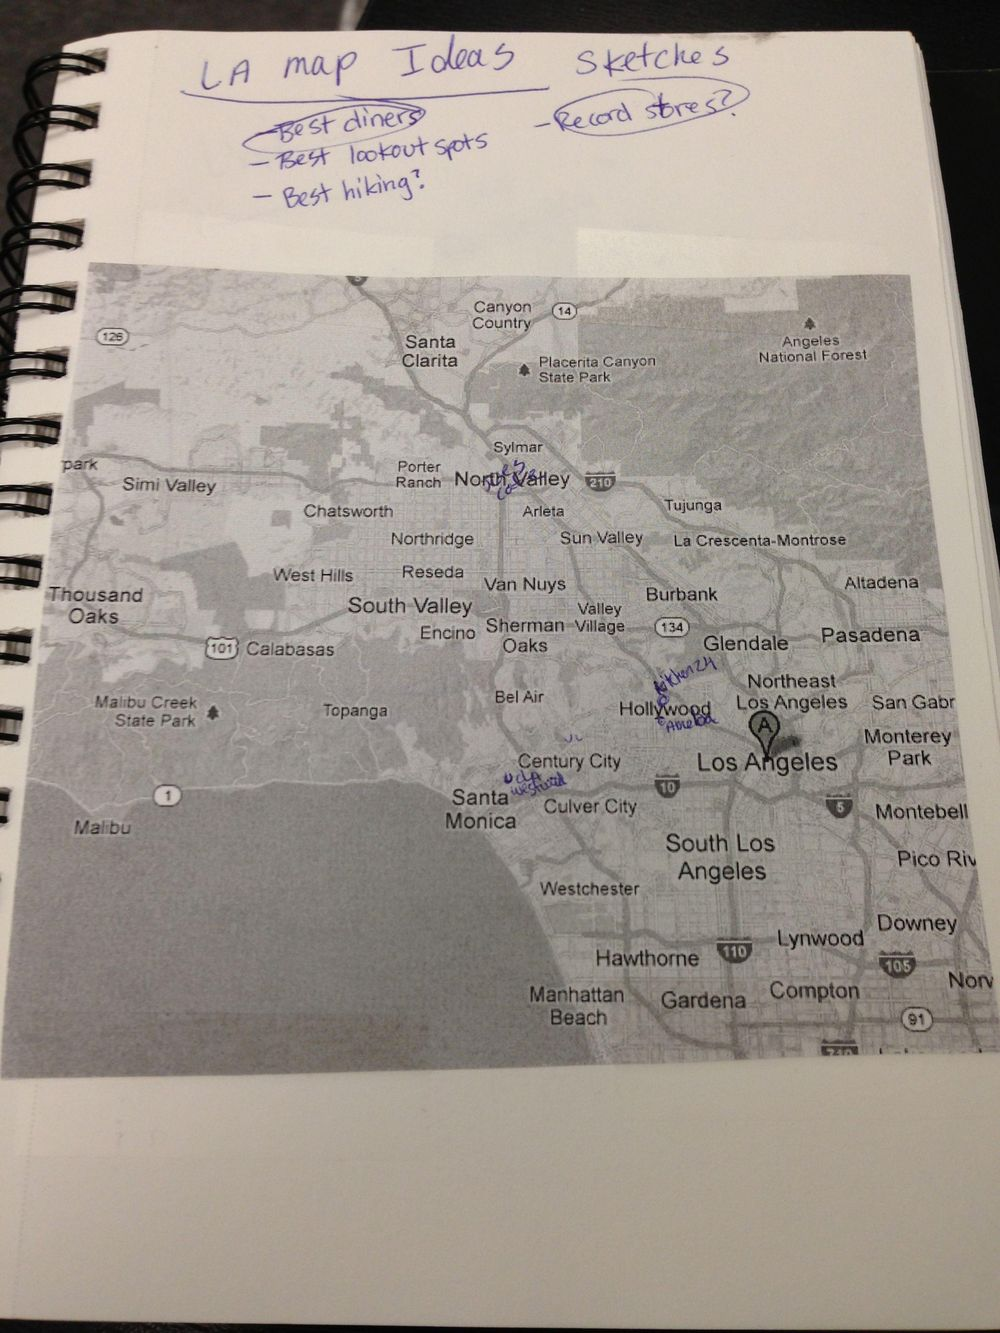 Map of Los Angeles  - image 1 - student project